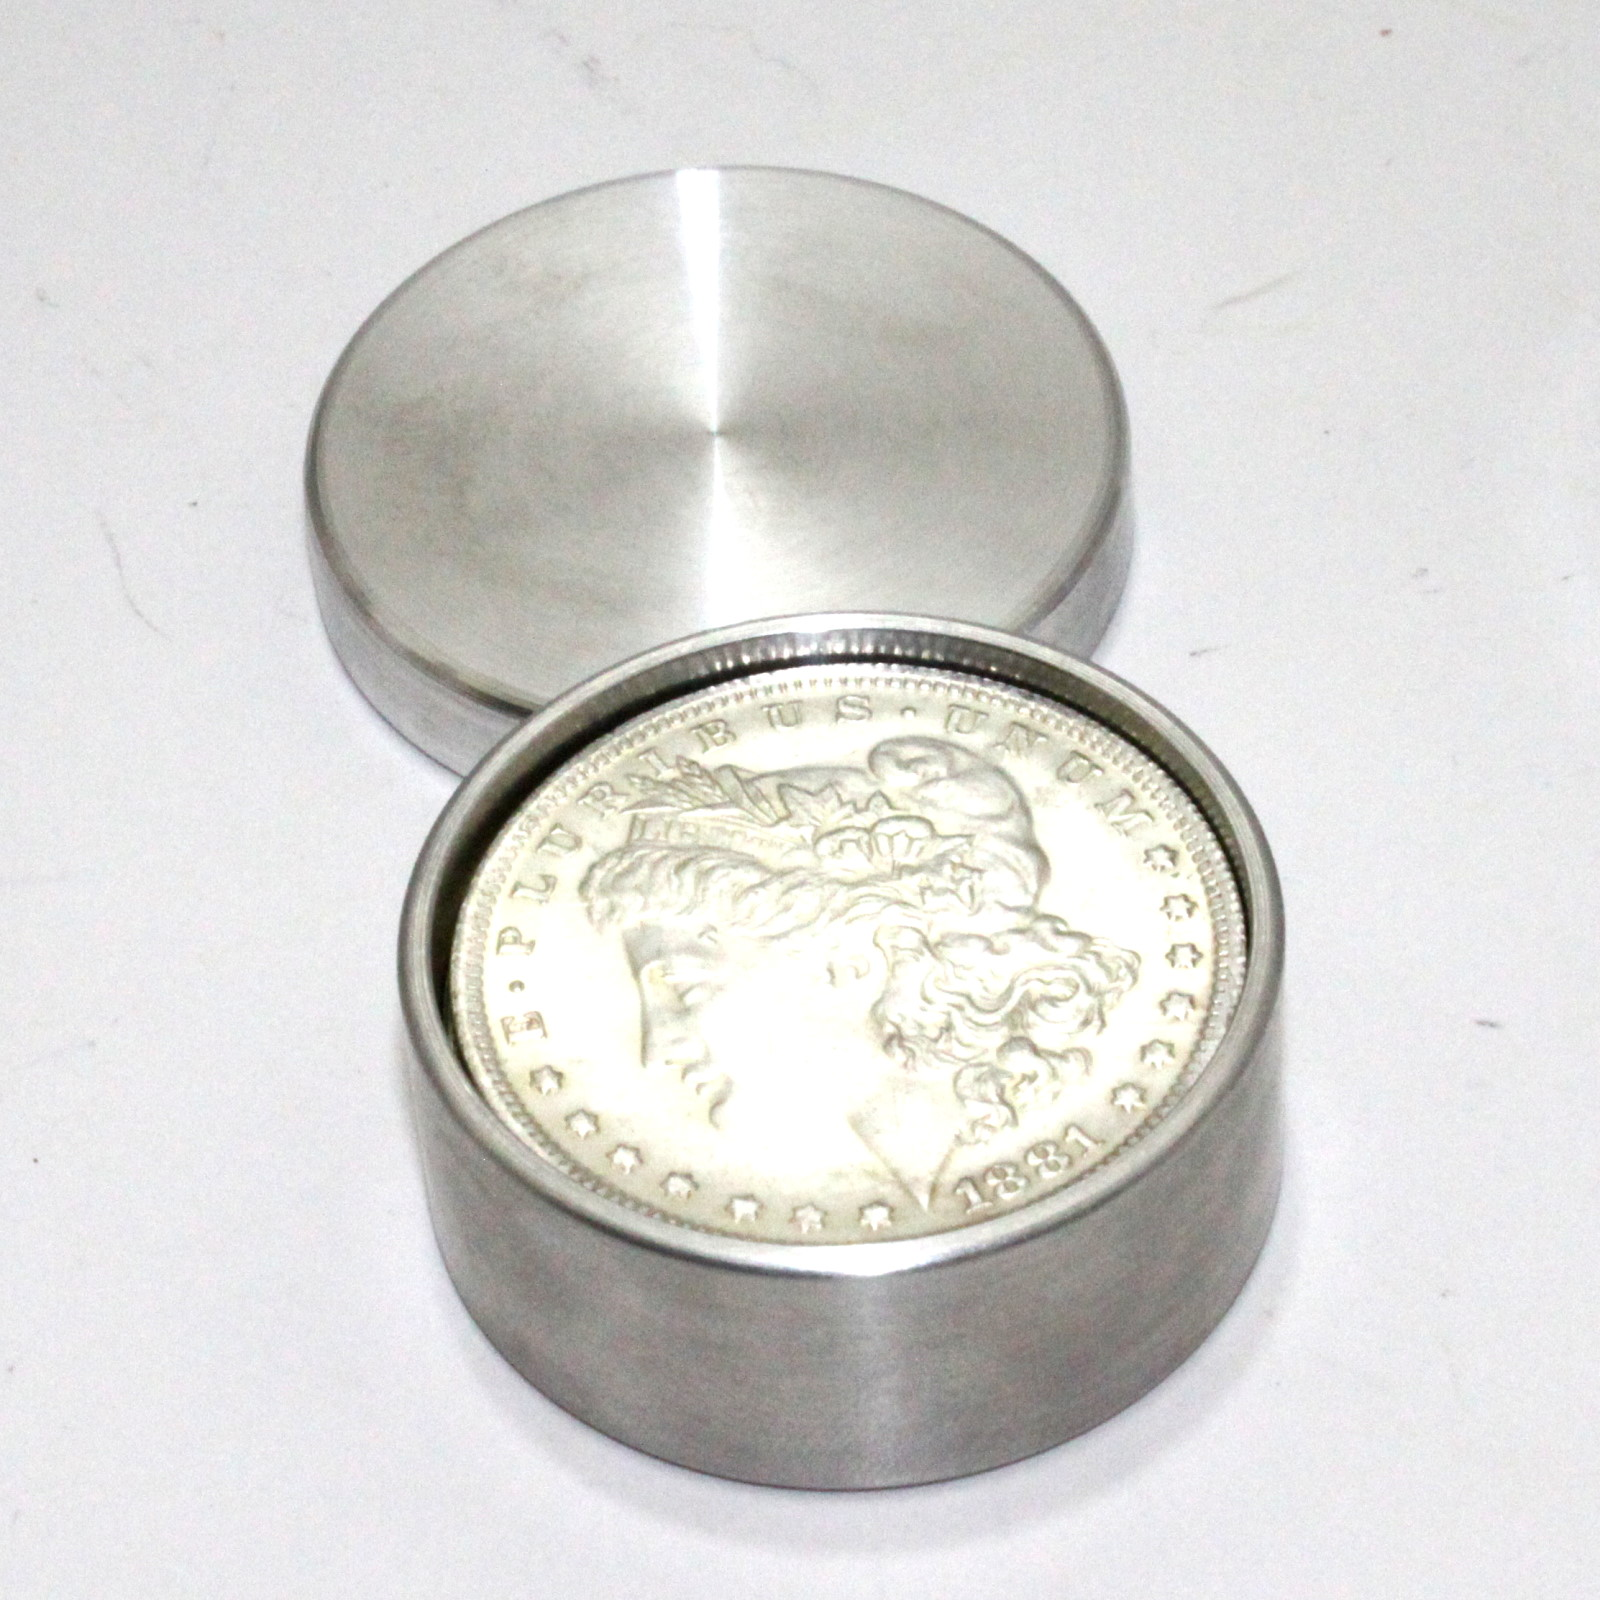 Aluminum Combination Coin Box Set (Morgan/Eisenhower) by Roy Kueppers